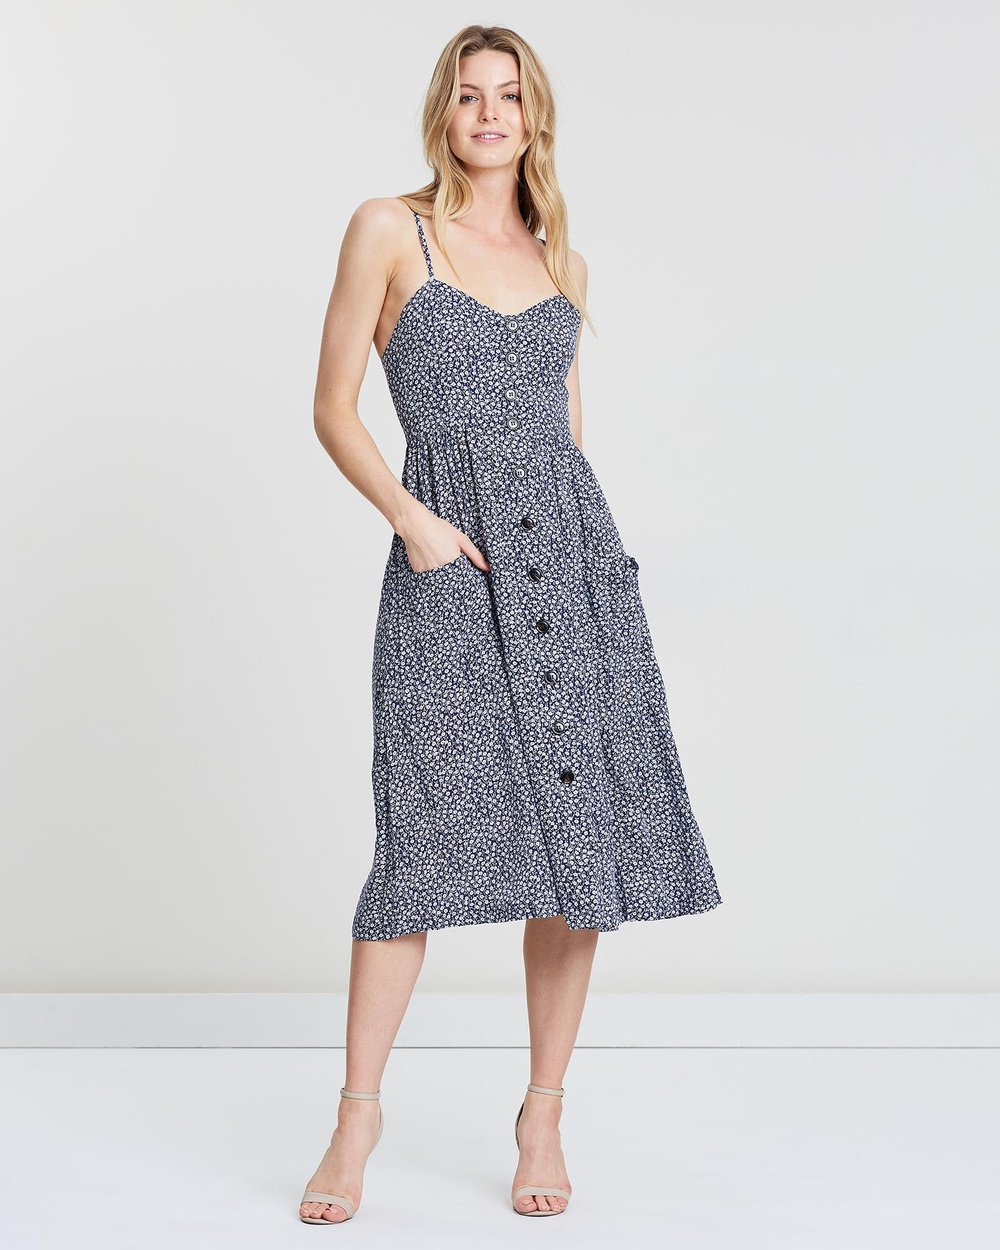 St. Frock Navy With Small White Floral Jezebel Dress